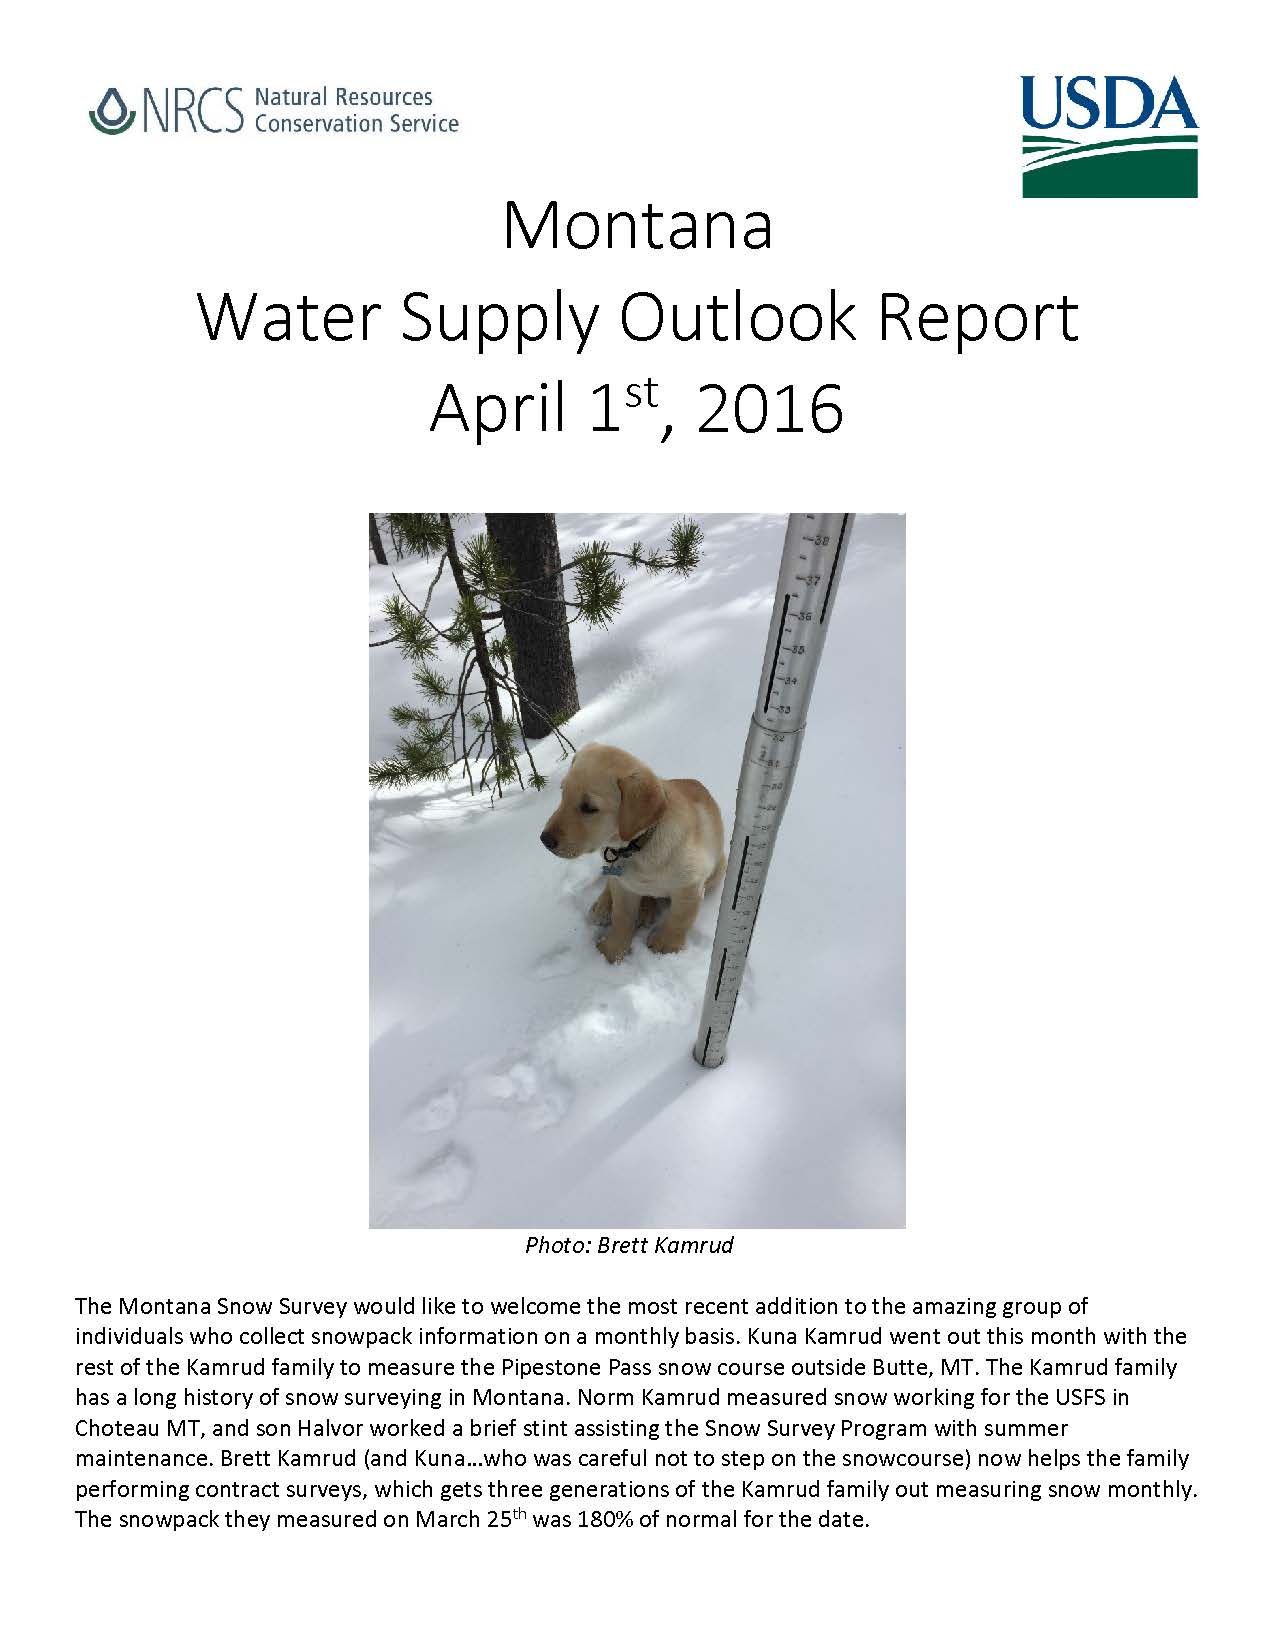 April 1st, 2016 Water Supply Outlook Report Coverpage